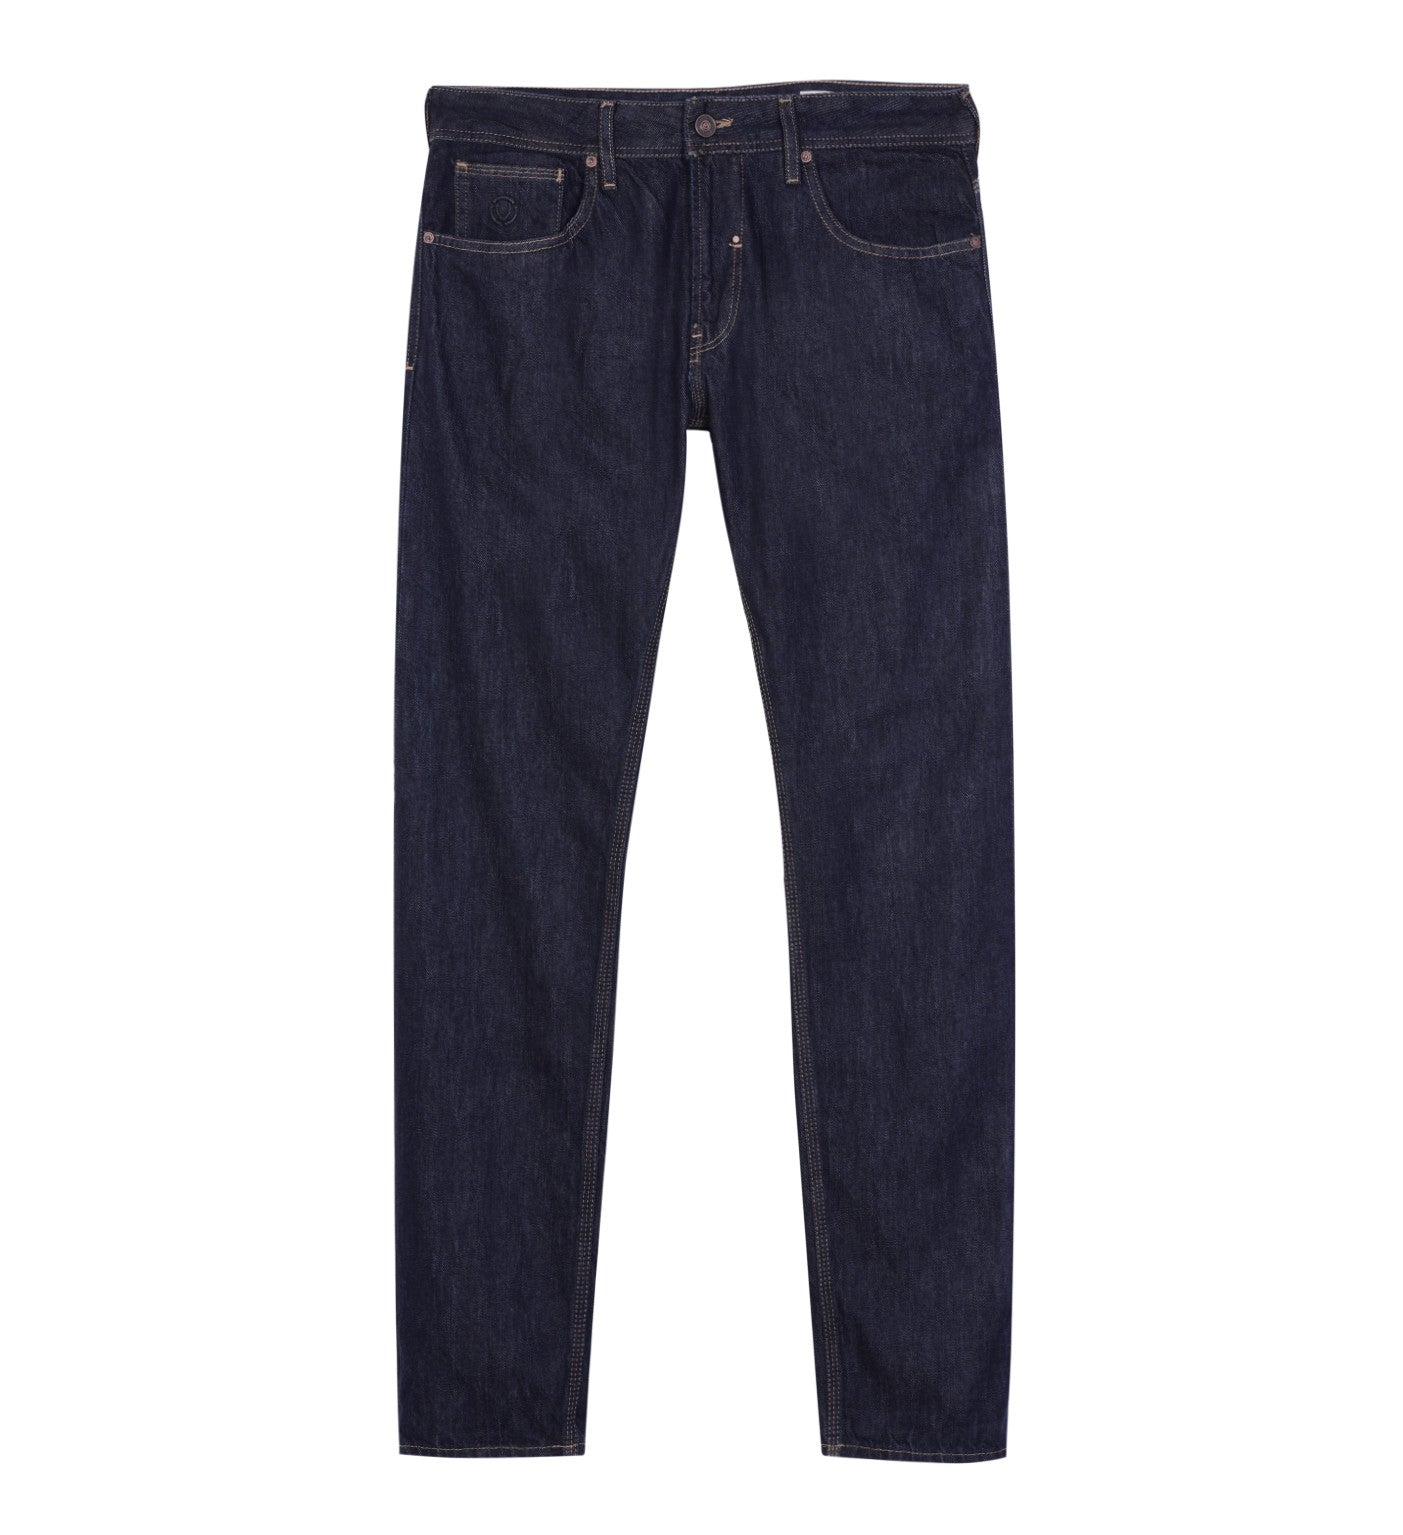 Boxren Jeans - RAW RINSE WASH